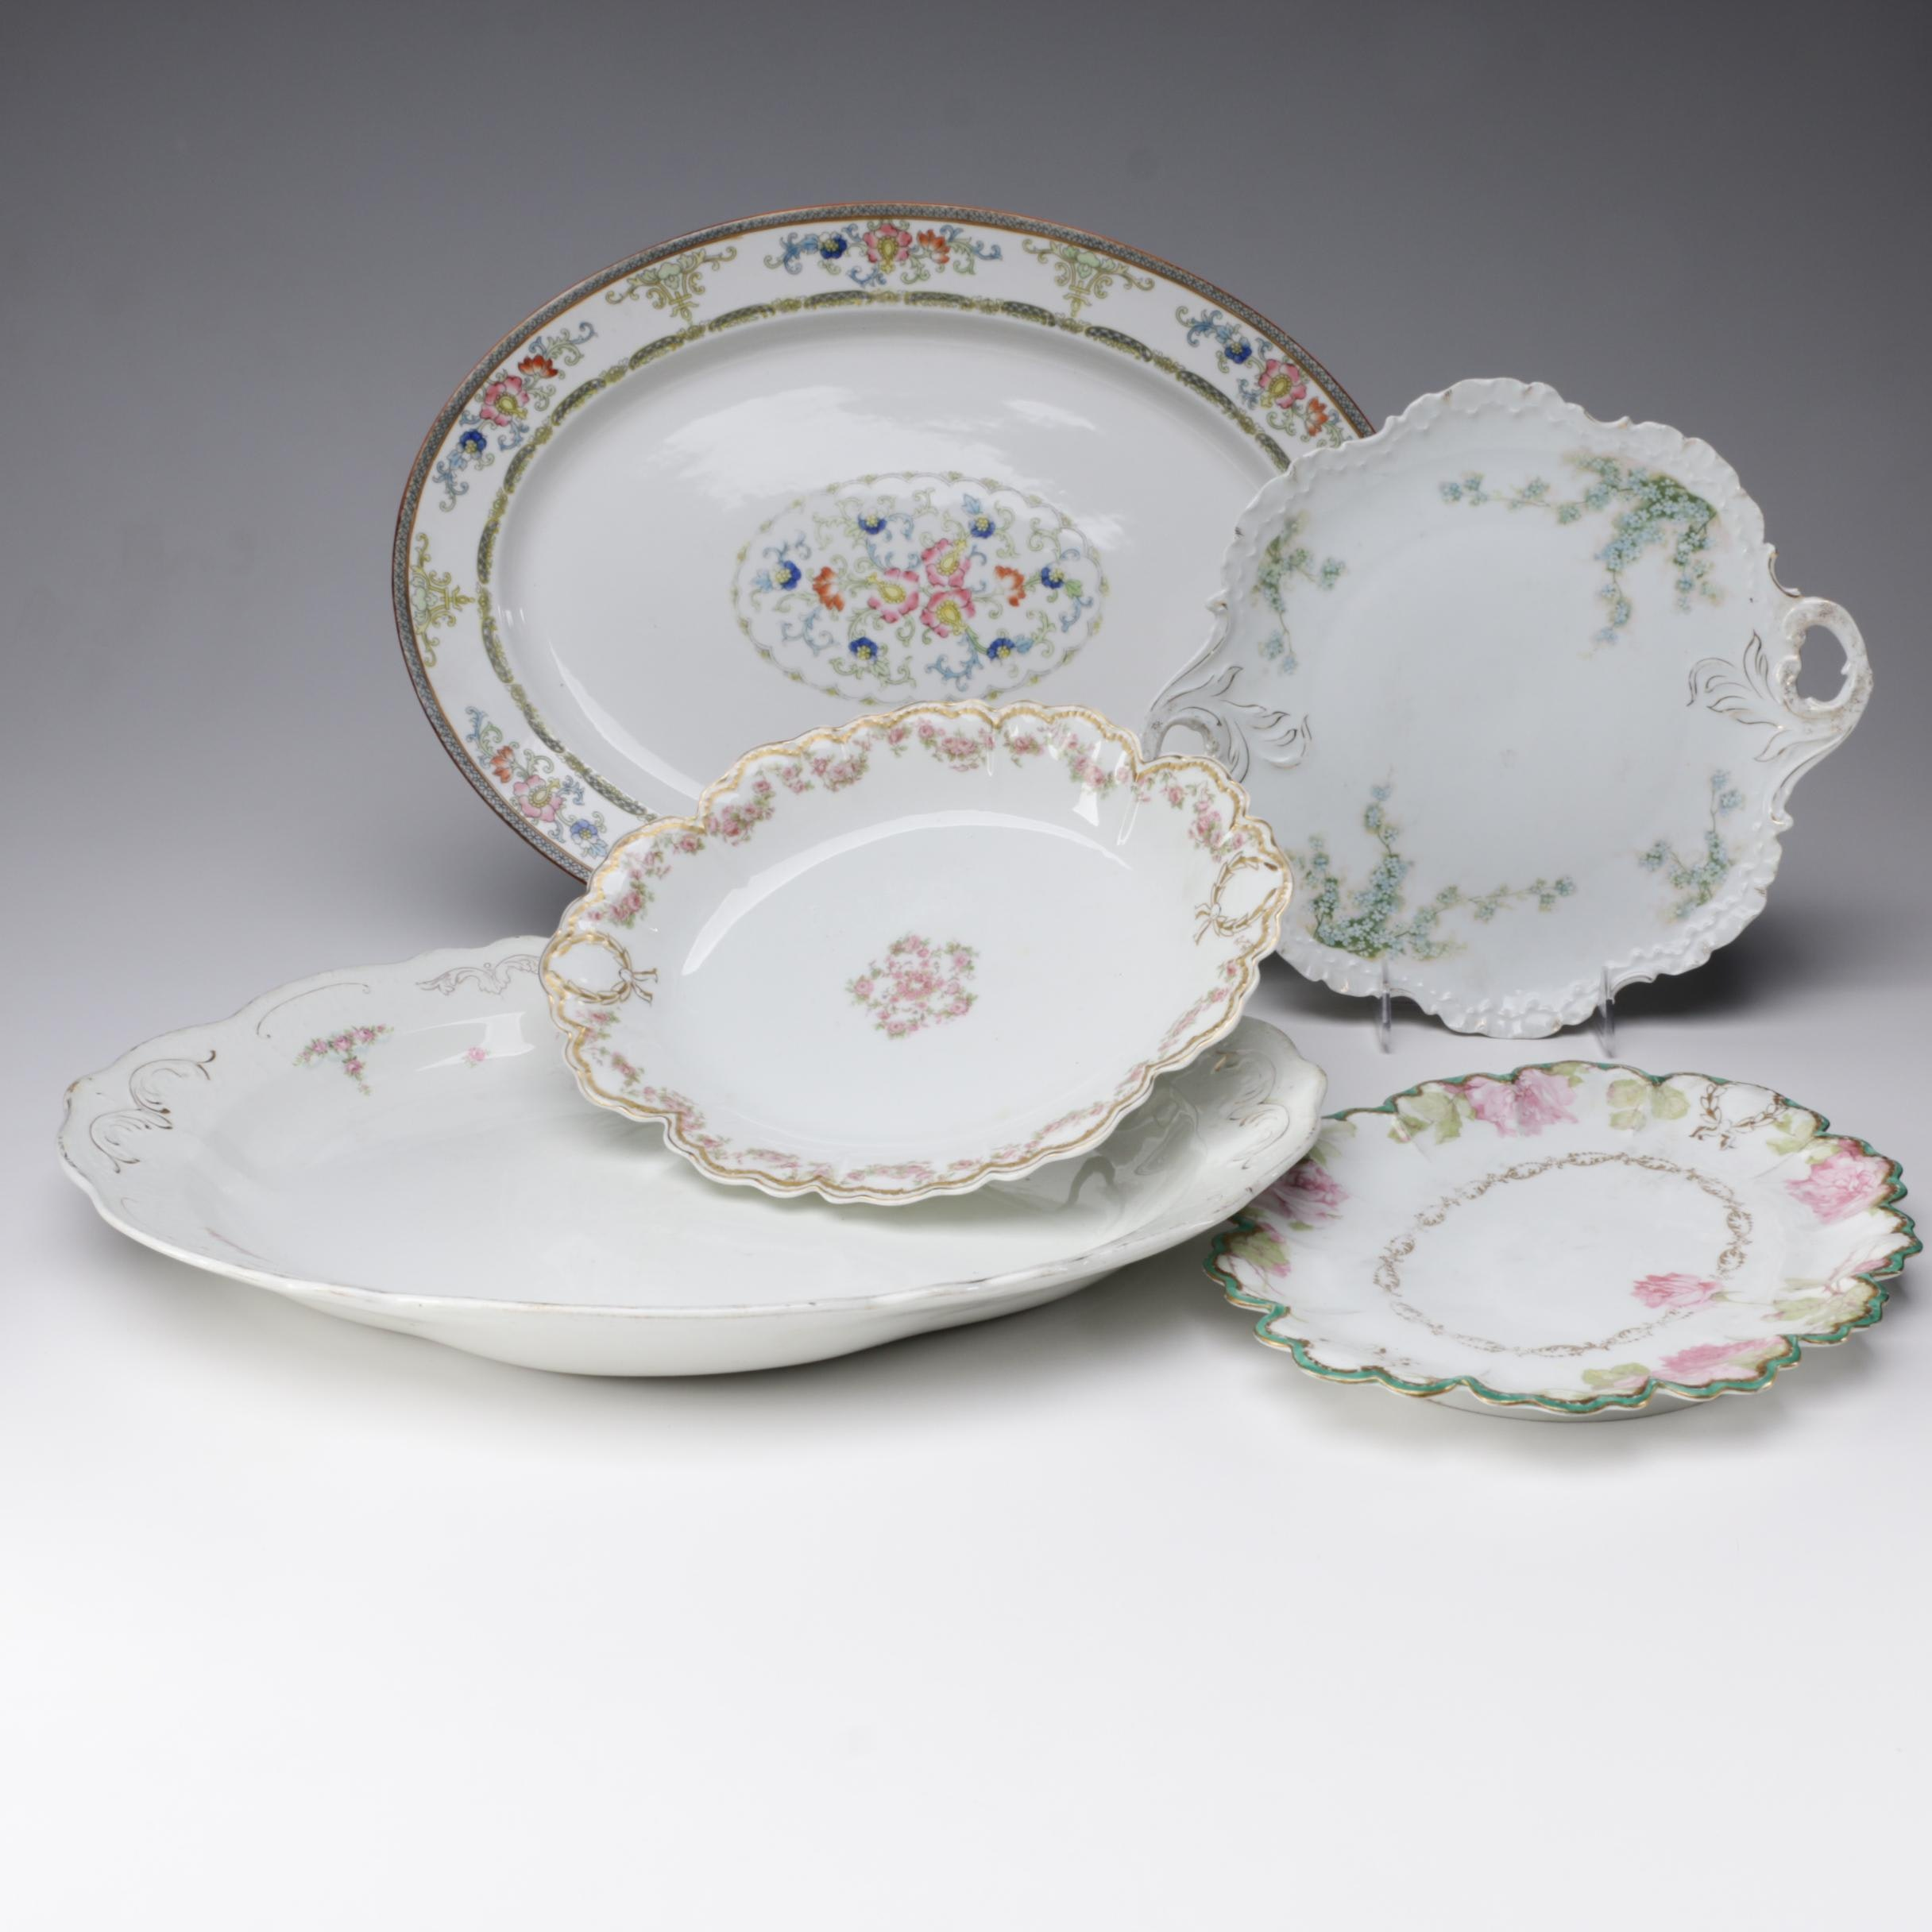 Porcelain and Ceramic Serveware featuring Haviland and Rosenthal